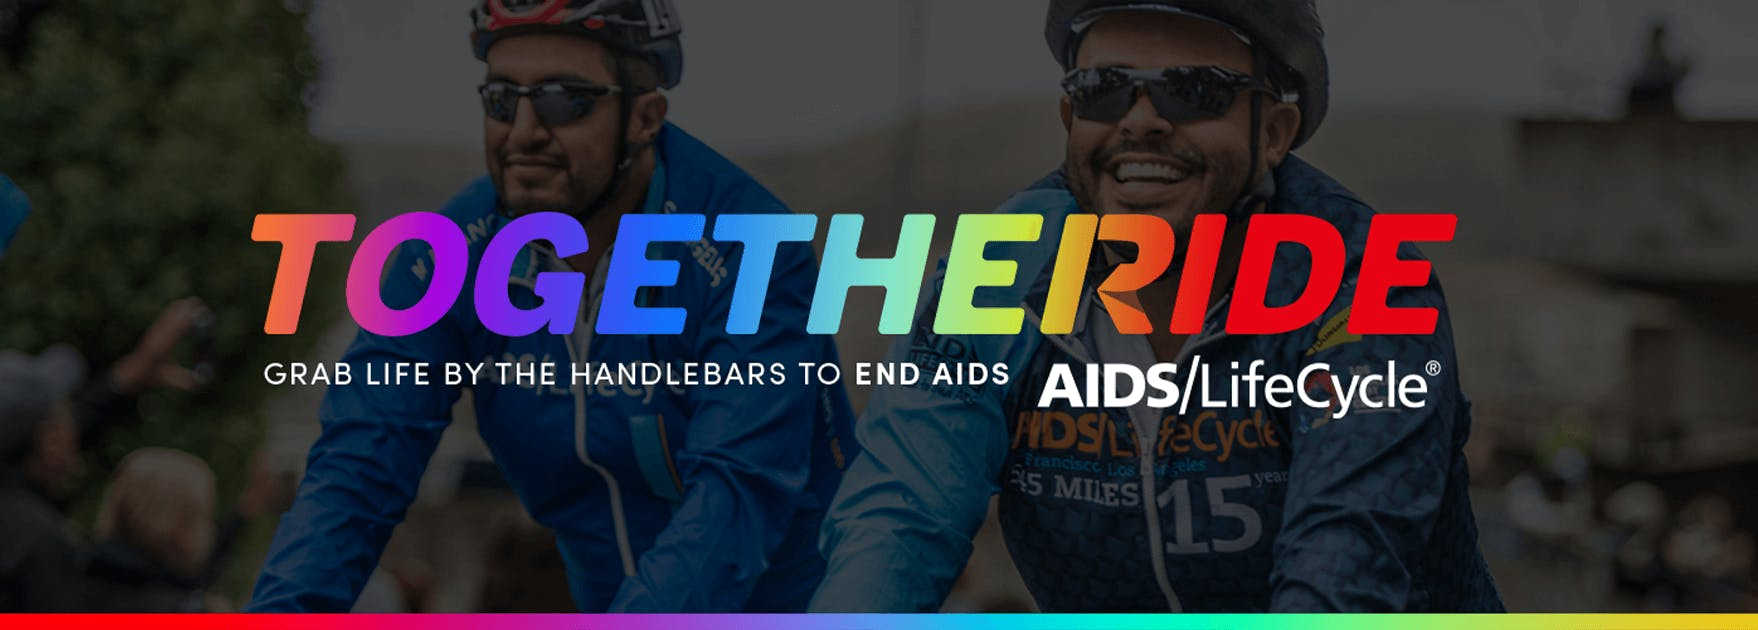 ABOUT AIDS/LIFECYCLE